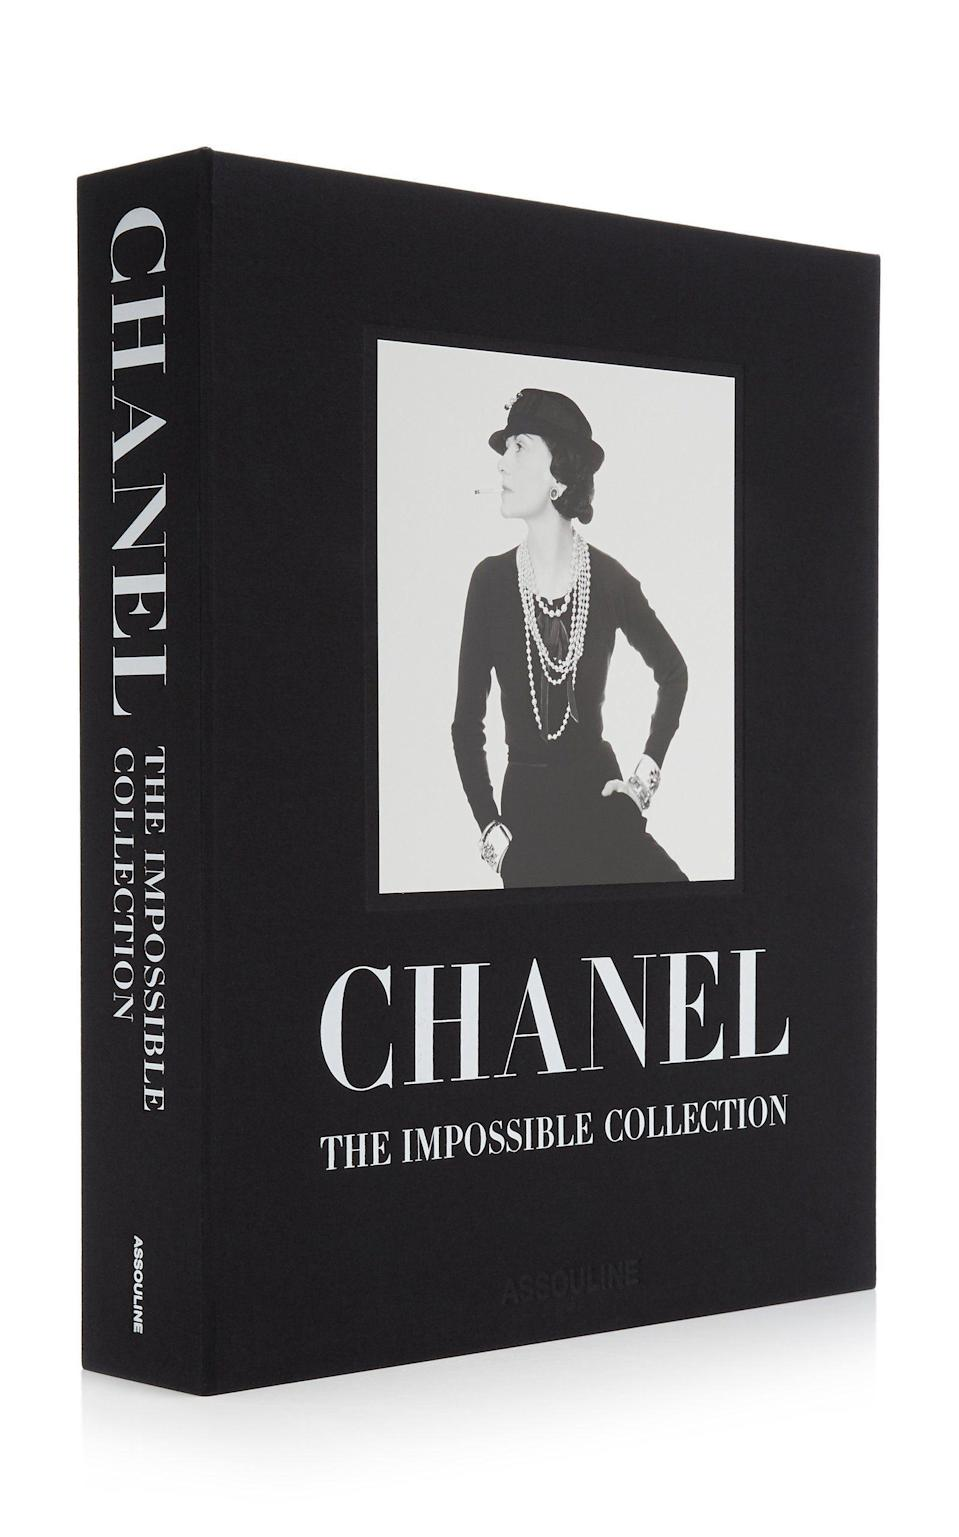 """<p><strong>Assouline</strong></p><p>modaoperandi.com</p><p><strong>$895.00</strong></p><p><a href=""""https://go.redirectingat.com?id=74968X1596630&url=https%3A%2F%2Fwww.modaoperandi.com%2Fhome%2Fp%2Fassouline%2Fthe-impossible-collection-of-chanel%2F495328&sref=https%3A%2F%2Fwww.harpersbazaar.com%2Fwedding%2Fplanning%2Fg36435226%2Flast-minute-wedding-gift-ideas%2F"""" rel=""""nofollow noopener"""" target=""""_blank"""" data-ylk=""""slk:SHOP NOW"""" class=""""link rapid-noclick-resp"""">SHOP NOW</a></p><p>Whether the couple enjoys travel, fashion, art, or food, a coffee table tome will be cherished and well-received. Be conscious of the book's theme and color palette to ensure it works with the overall look of their space.</p>"""